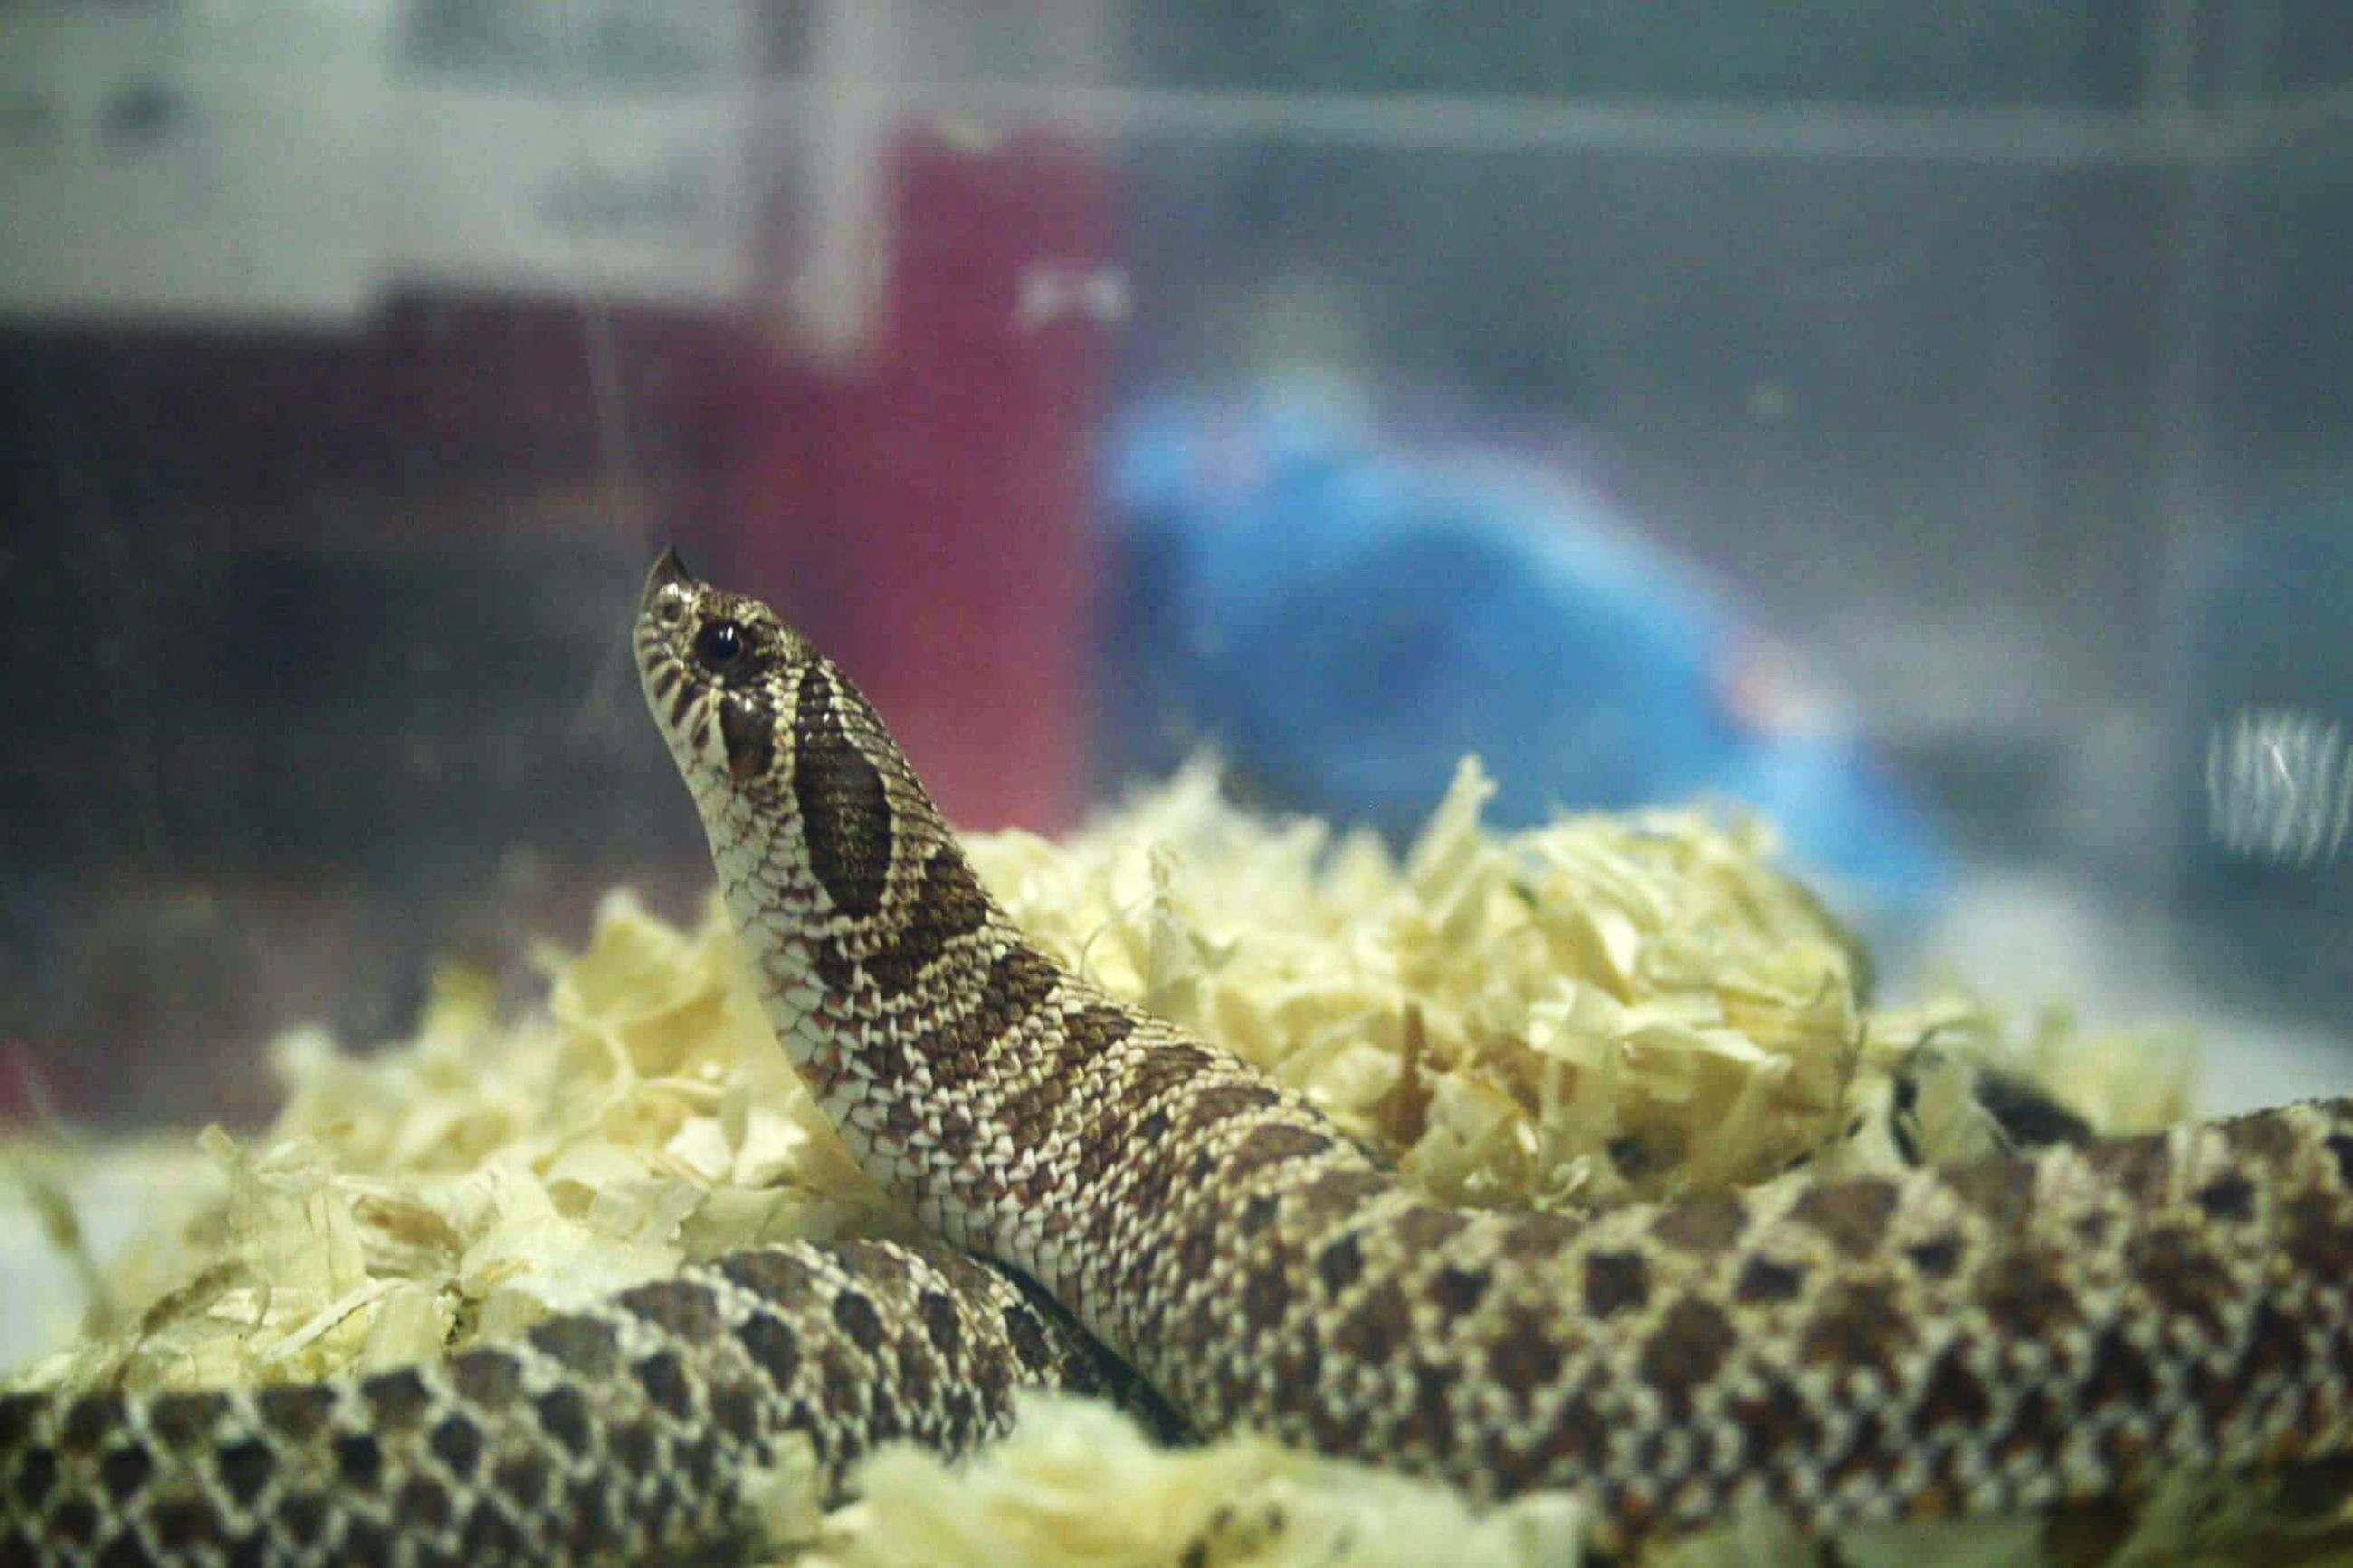 animal themes, one animal, animals in the wild, wildlife, close-up, focus on foreground, selective focus, reptile, insect, nature, indoors, animal wildlife, underwater, animals in captivity, sea life, no people, lizard, zoology, day